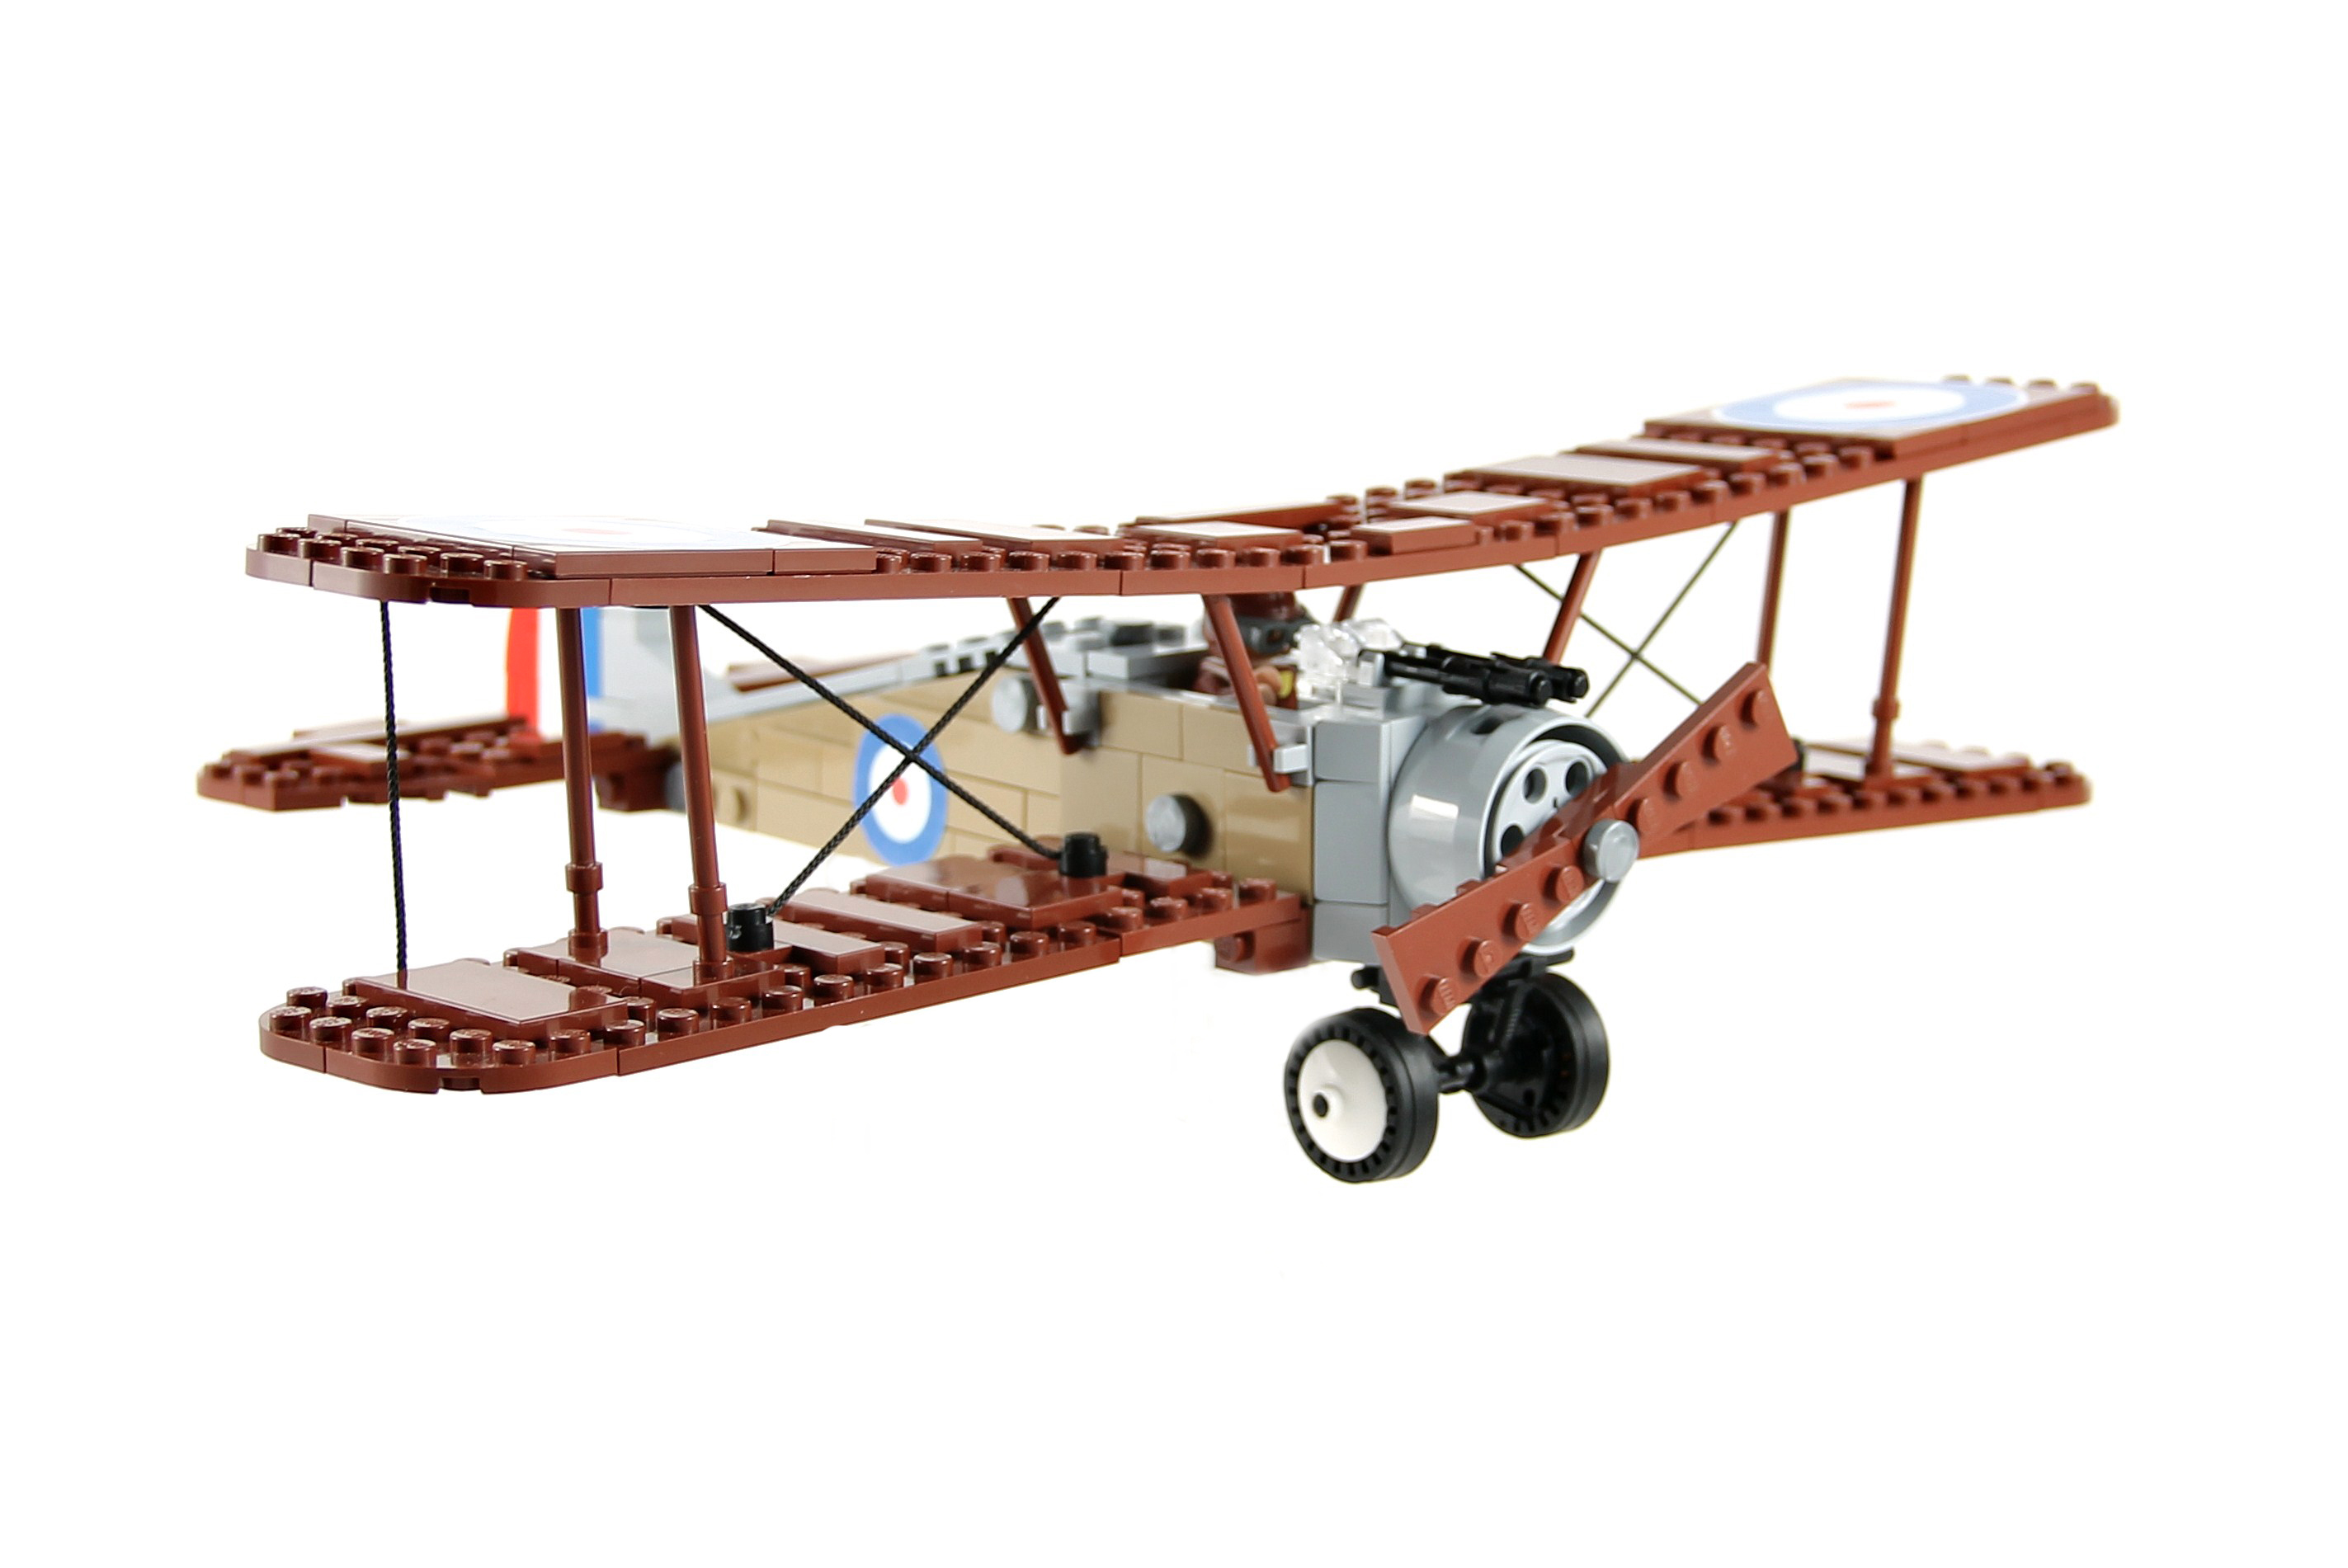 1-sopwith_camel-overview.jpg